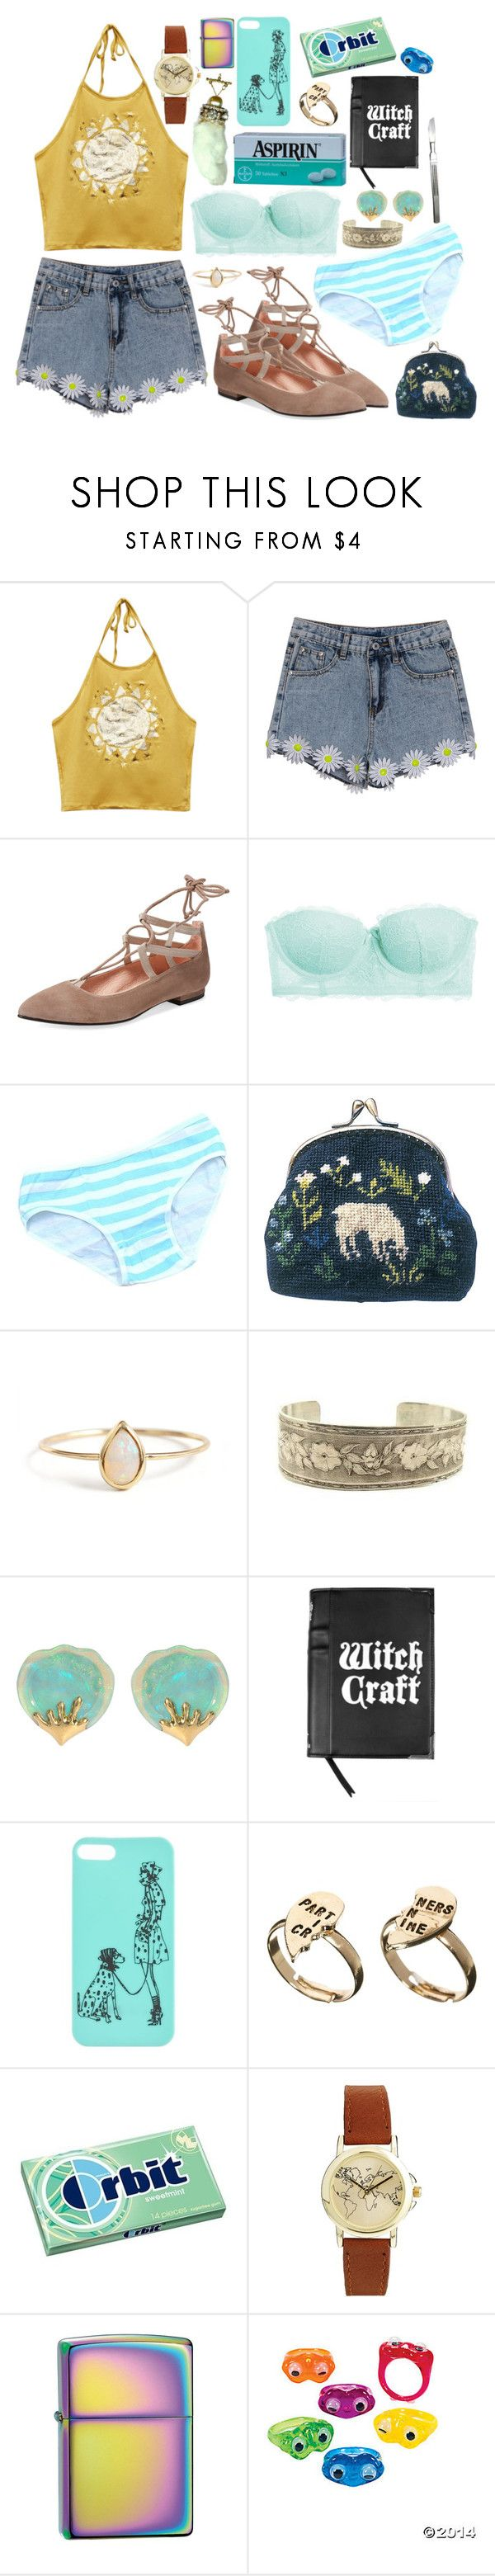 """""""Summer Date Night: Blue and Pink"""" by brahski ❤ liked on Polyvore featuring Wet Seal, French Sole FS/NY, Heidi Klum, Tiffany & Co., Emily Miranda, J.Crew, ASOS, Zippo, summerdatenight and thecovenseries"""